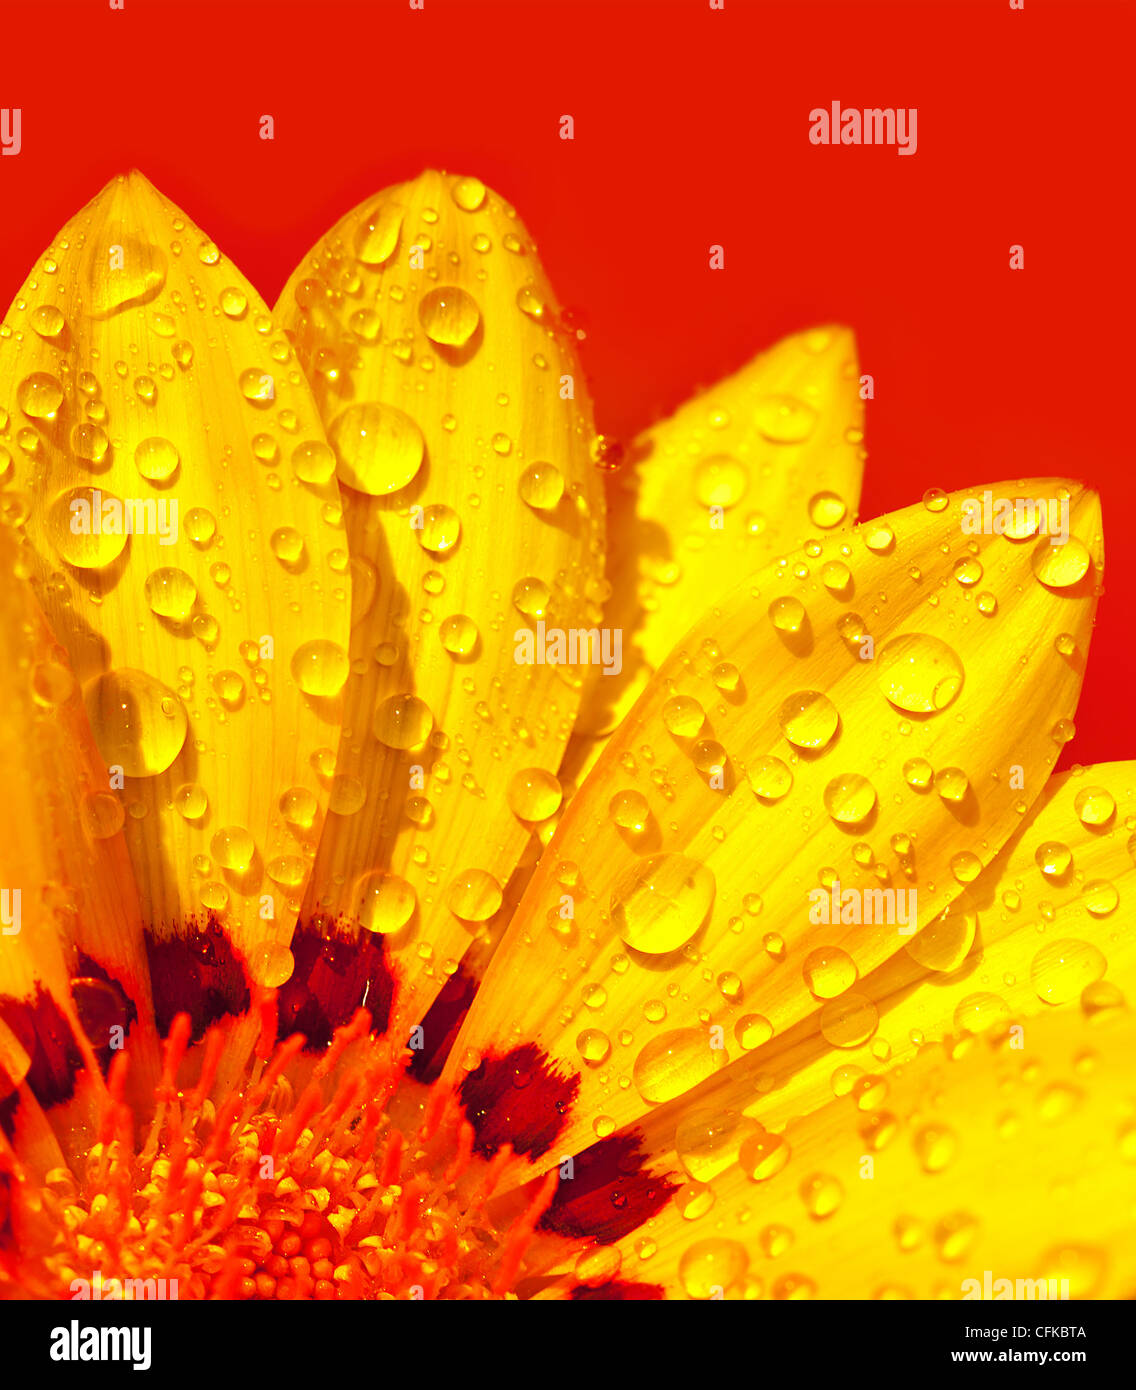 Abstract beautiful flower, colorful floral background , wet yellow petals border, daisy plant over red , nature - Stock Image